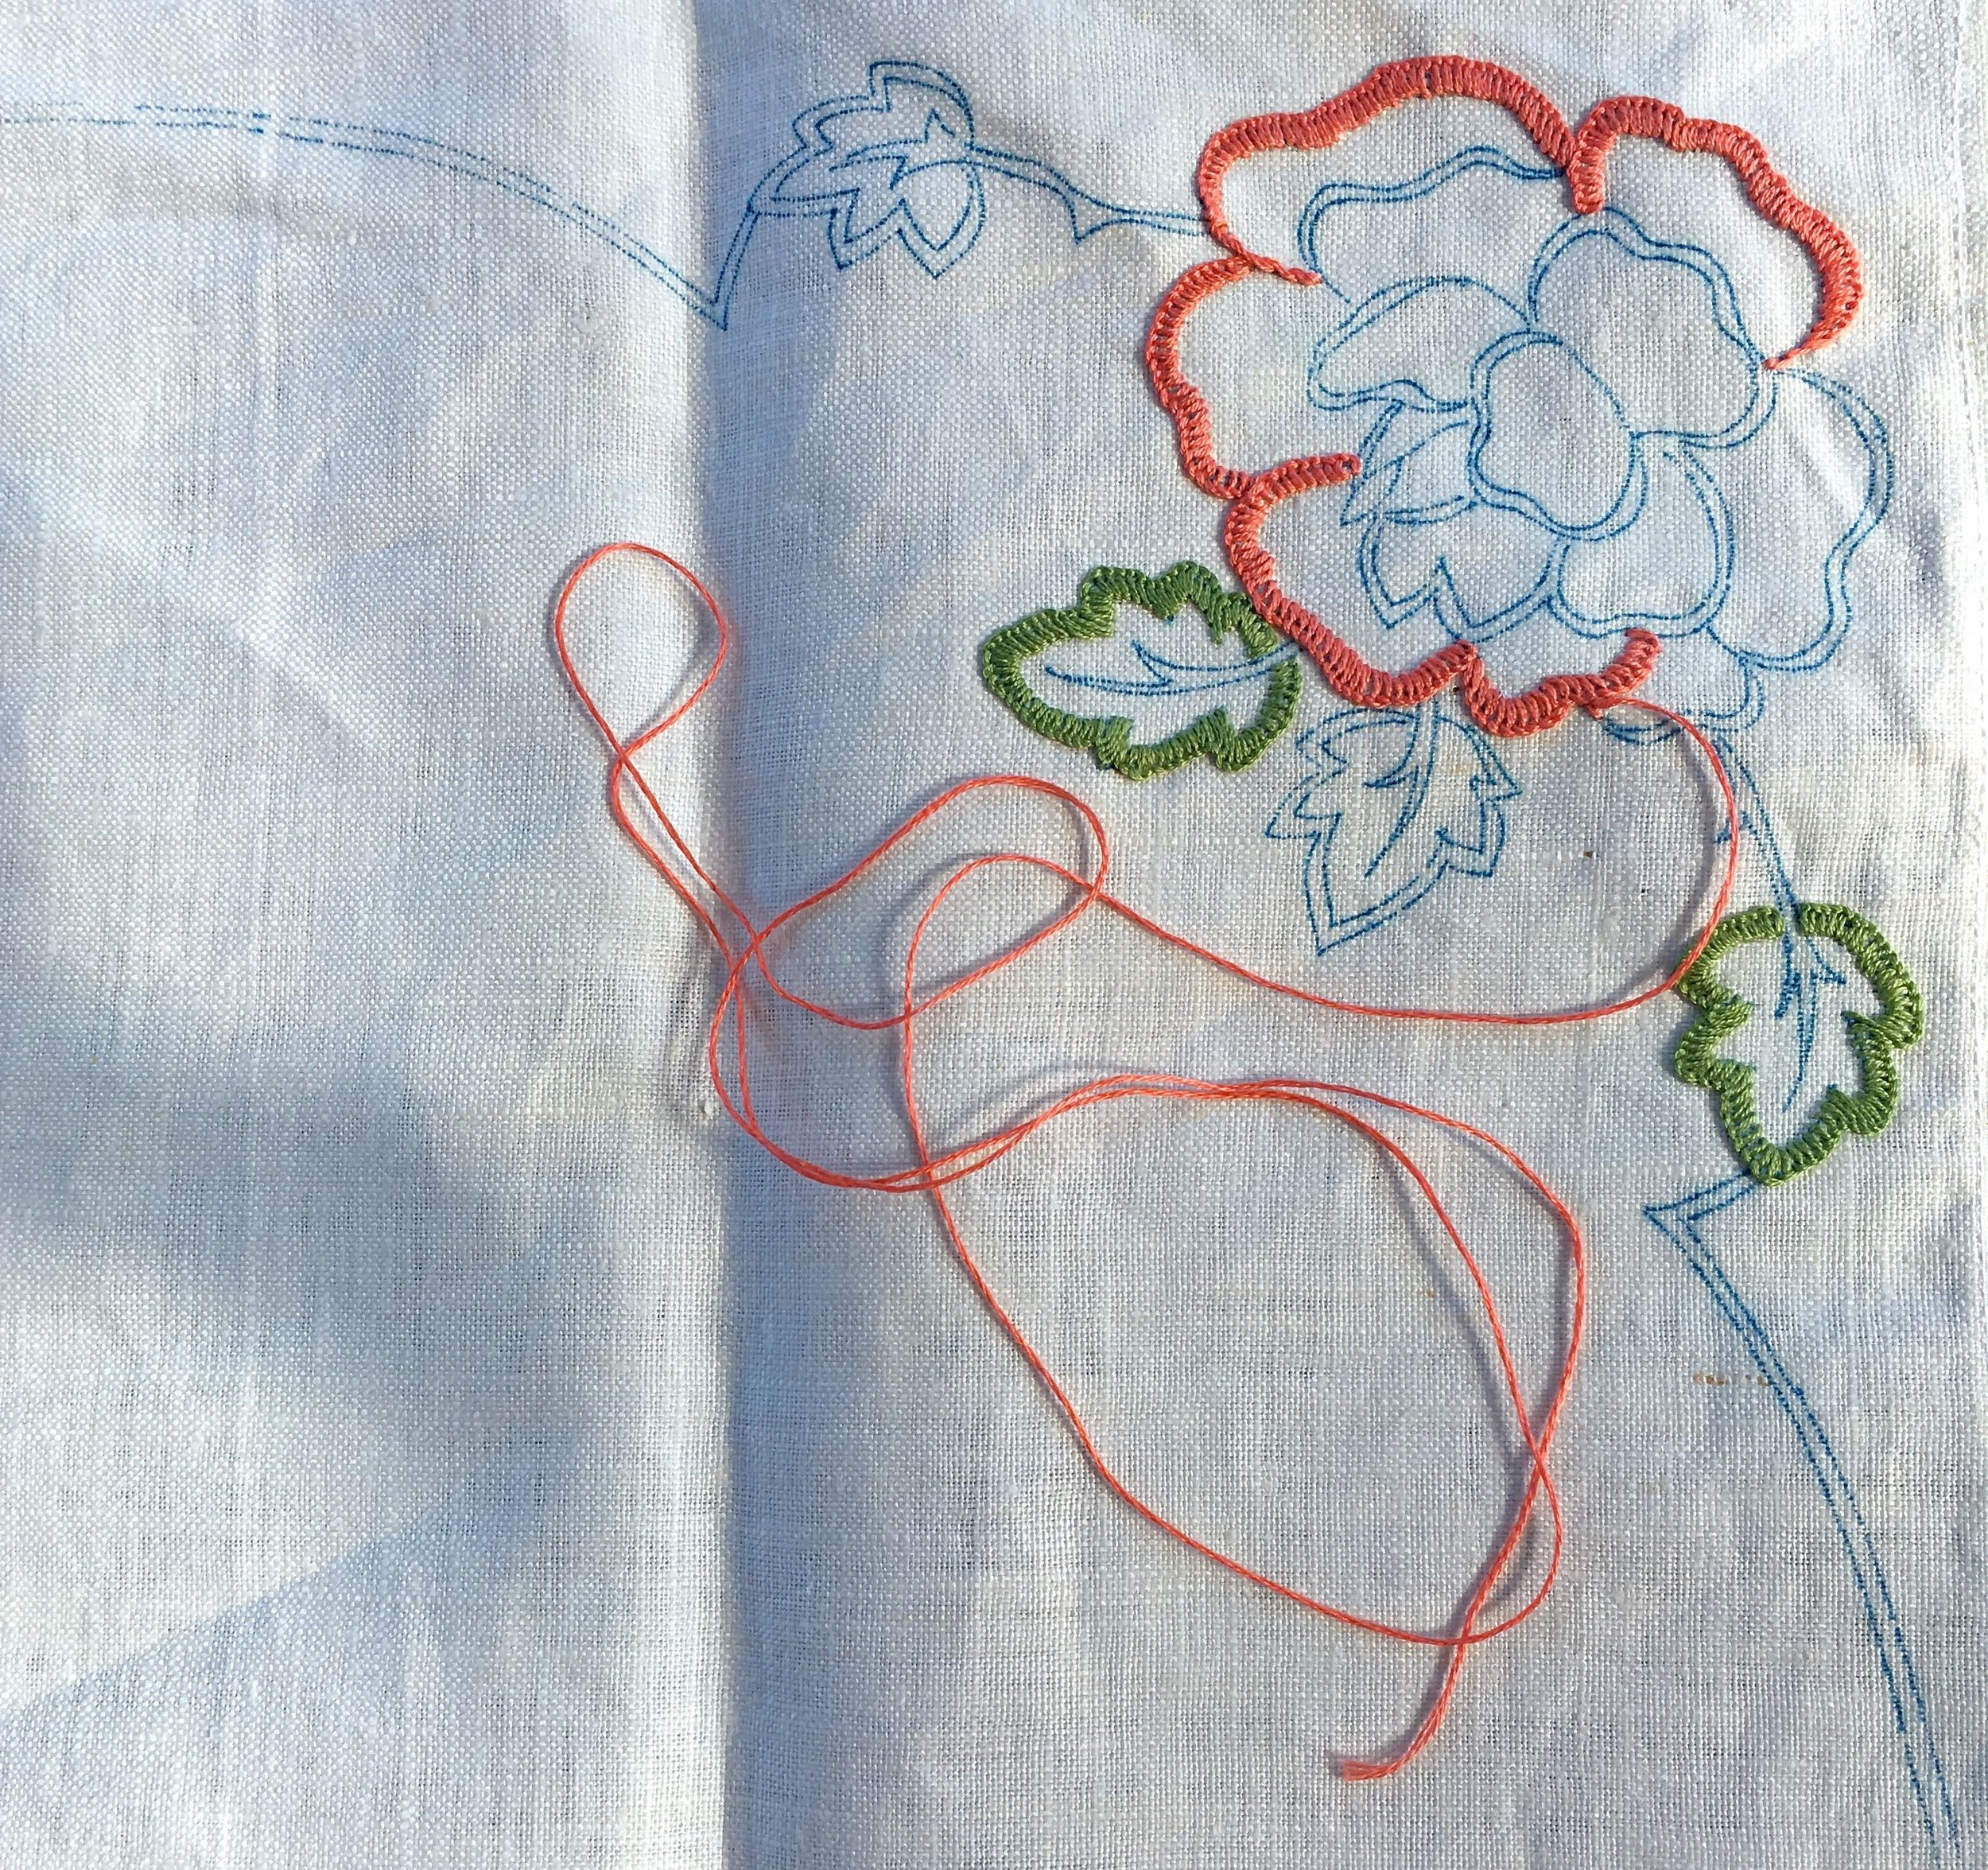 My linen tablecloth embroidery project - someone else has made a start